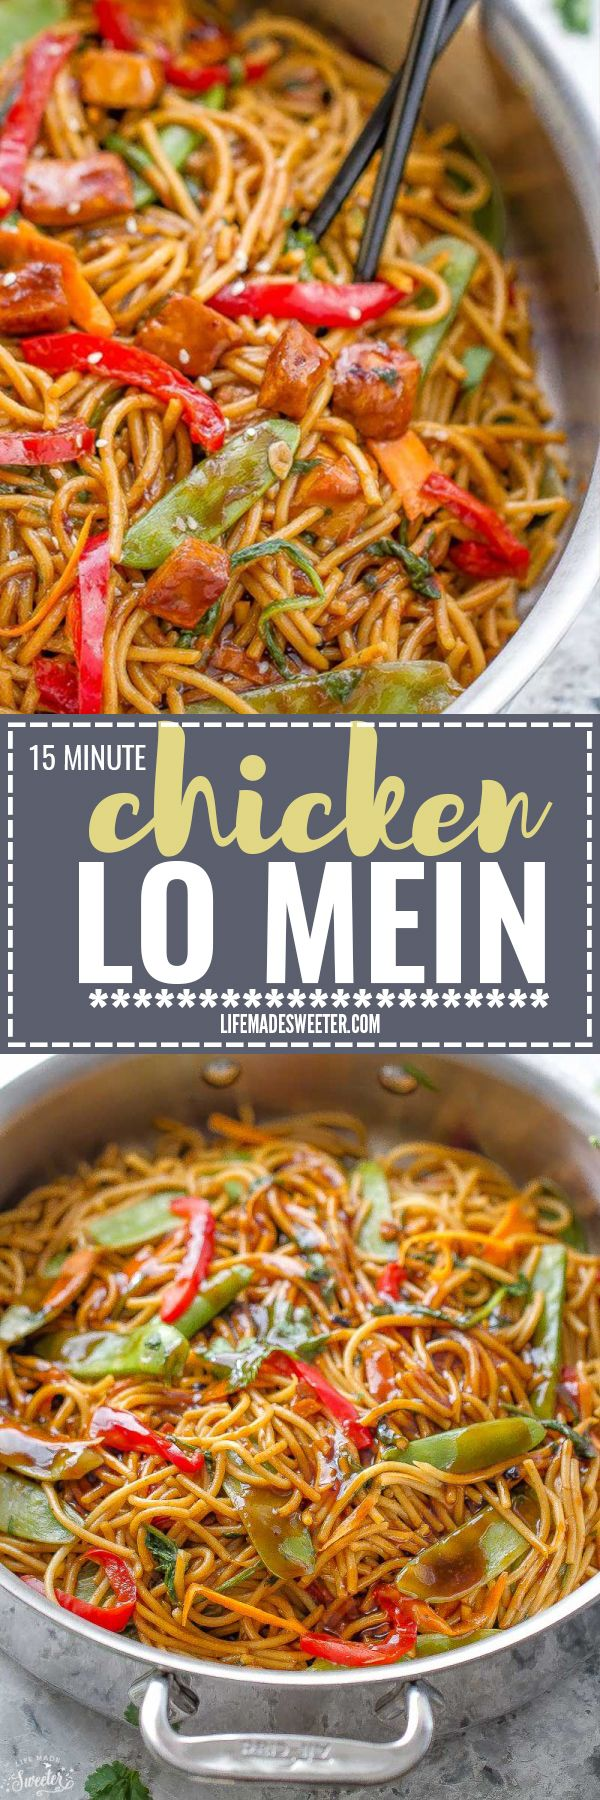 Easy Chicken Lo Mein is the perfect easy meal. Best of all, this authentic dish takes only 15 minutes to make in just ONE POT ONE PAN. Better than restaurant quality and so much easier than takeout! Weekly meal prep for the week and leftovers reheat beautifully and make great lunch bowls for work or school.